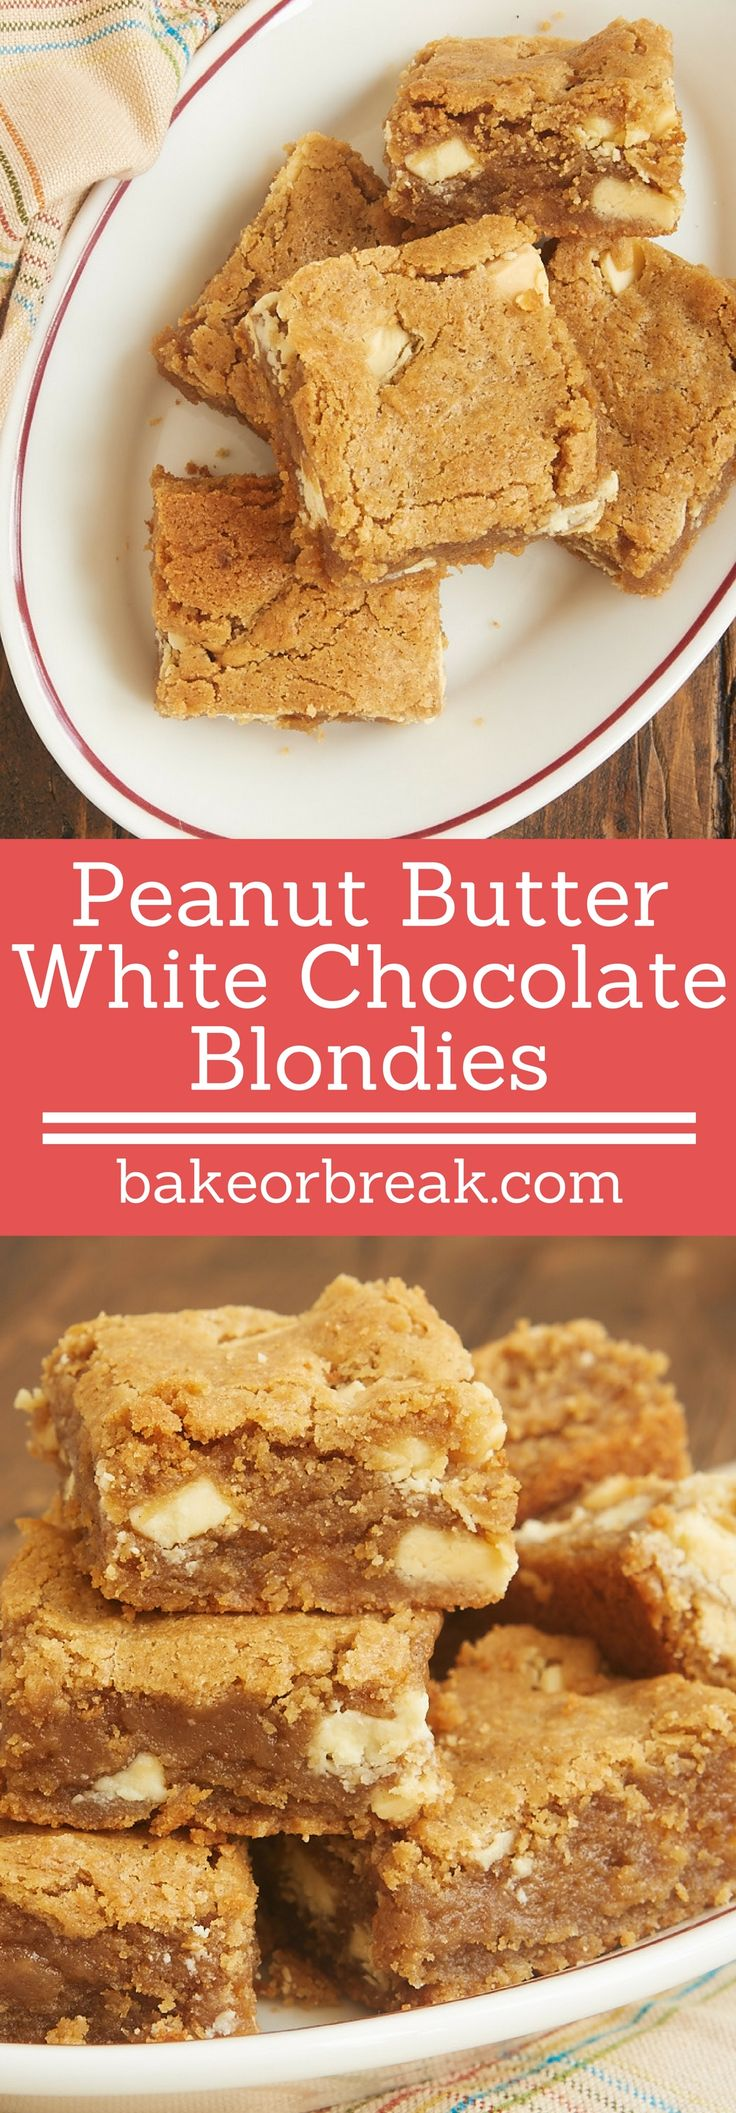 Peanut Butter White Chocolate Blondies are so soft, nutty, and delicious. One little extra ingredient makes them irresistible! - Bake or Break ~ http://www.bakeorbreak.com